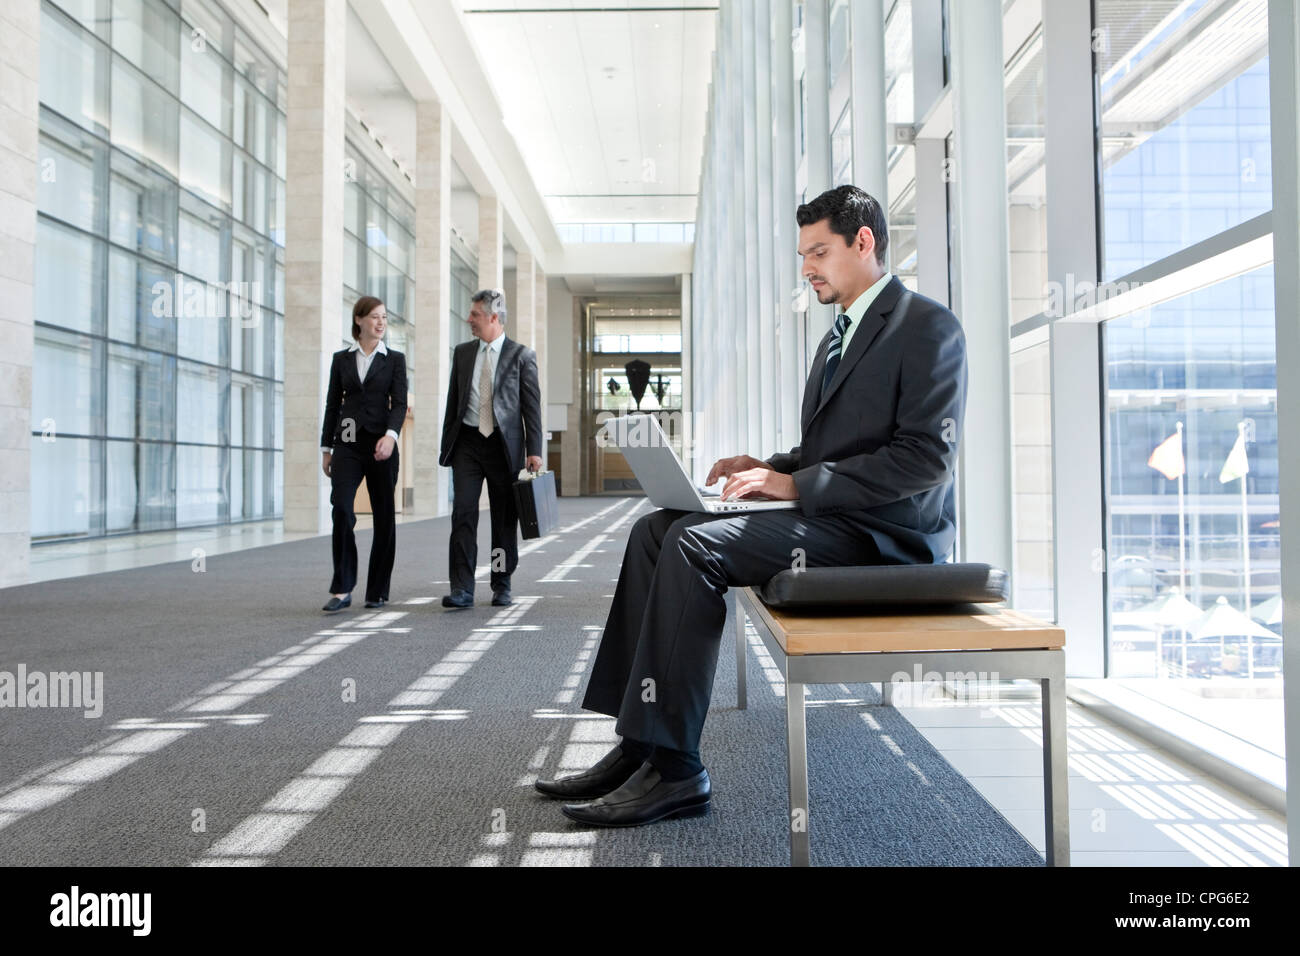 Businessman with laptop sitting on bench in office hallway, two business people talking by outdoor. - Stock Image